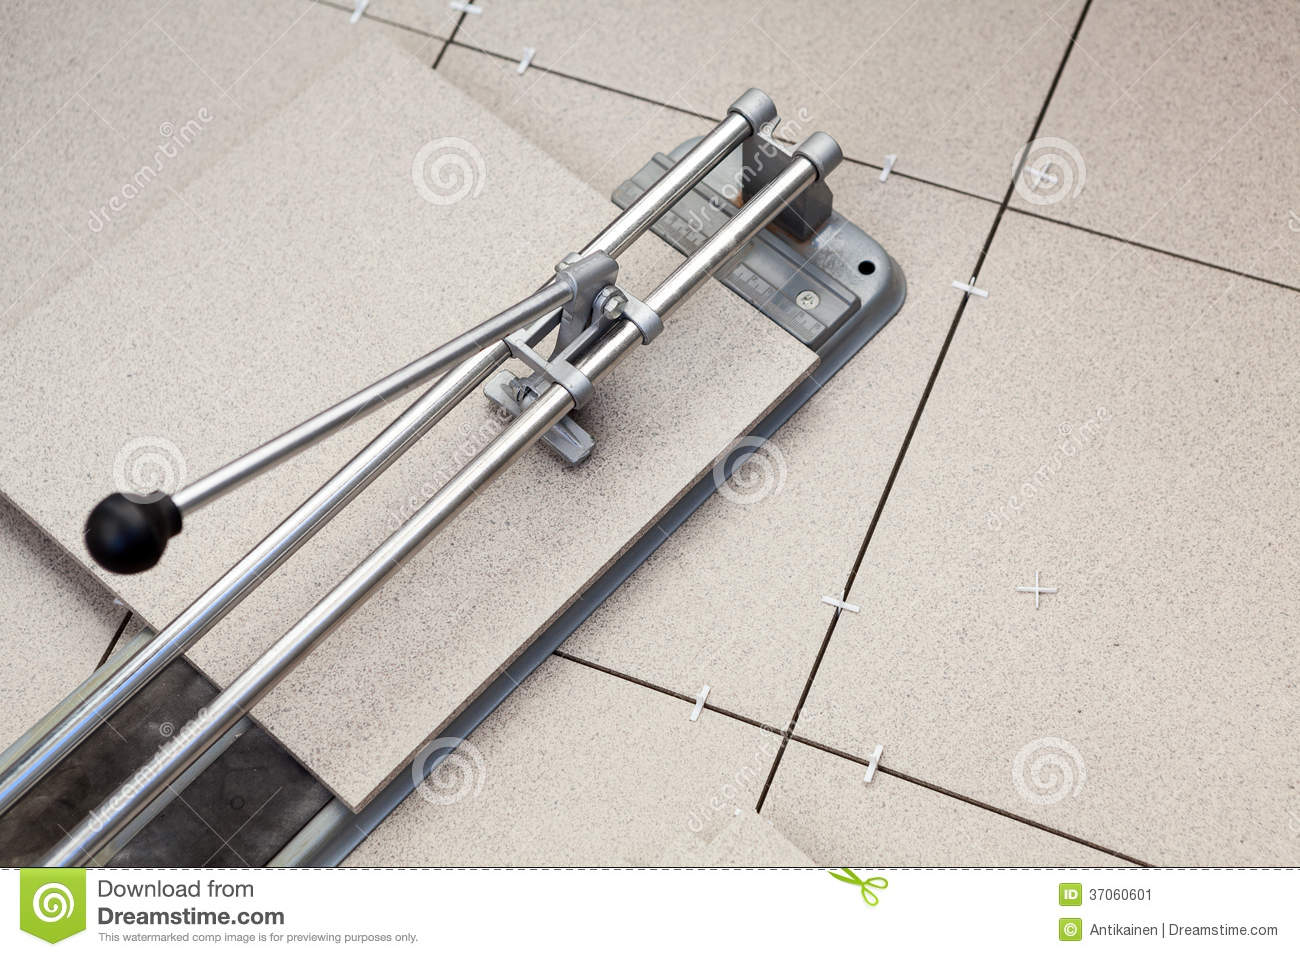 Tool for cutting porcelain tile stock image image of install tool for cutting porcelain tile dailygadgetfo Gallery